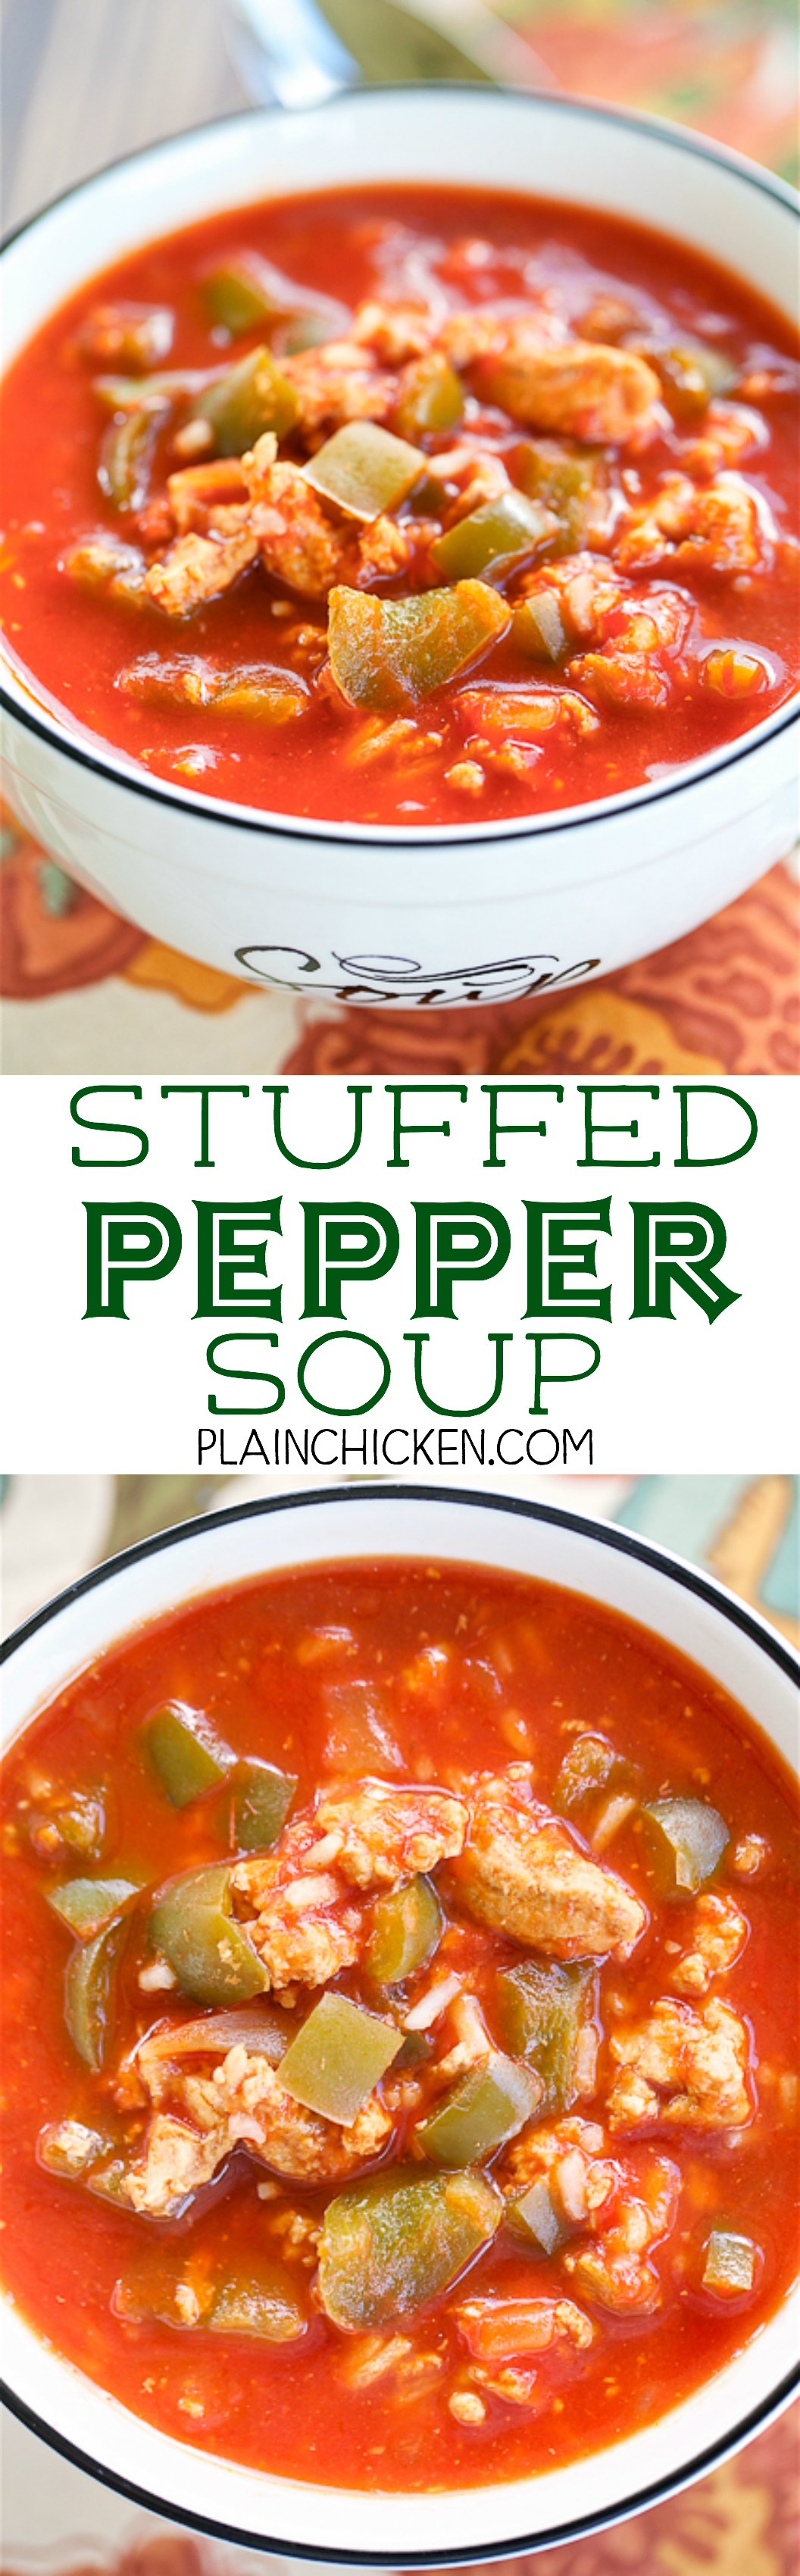 Stuffed Pepper Soup Ready In 30 Minutes Ground Turkey Green Peppers Onion Garlic Tomato Soup Beef Stuffed Peppers Stuffed Pepper Soup Main Dish Recipes